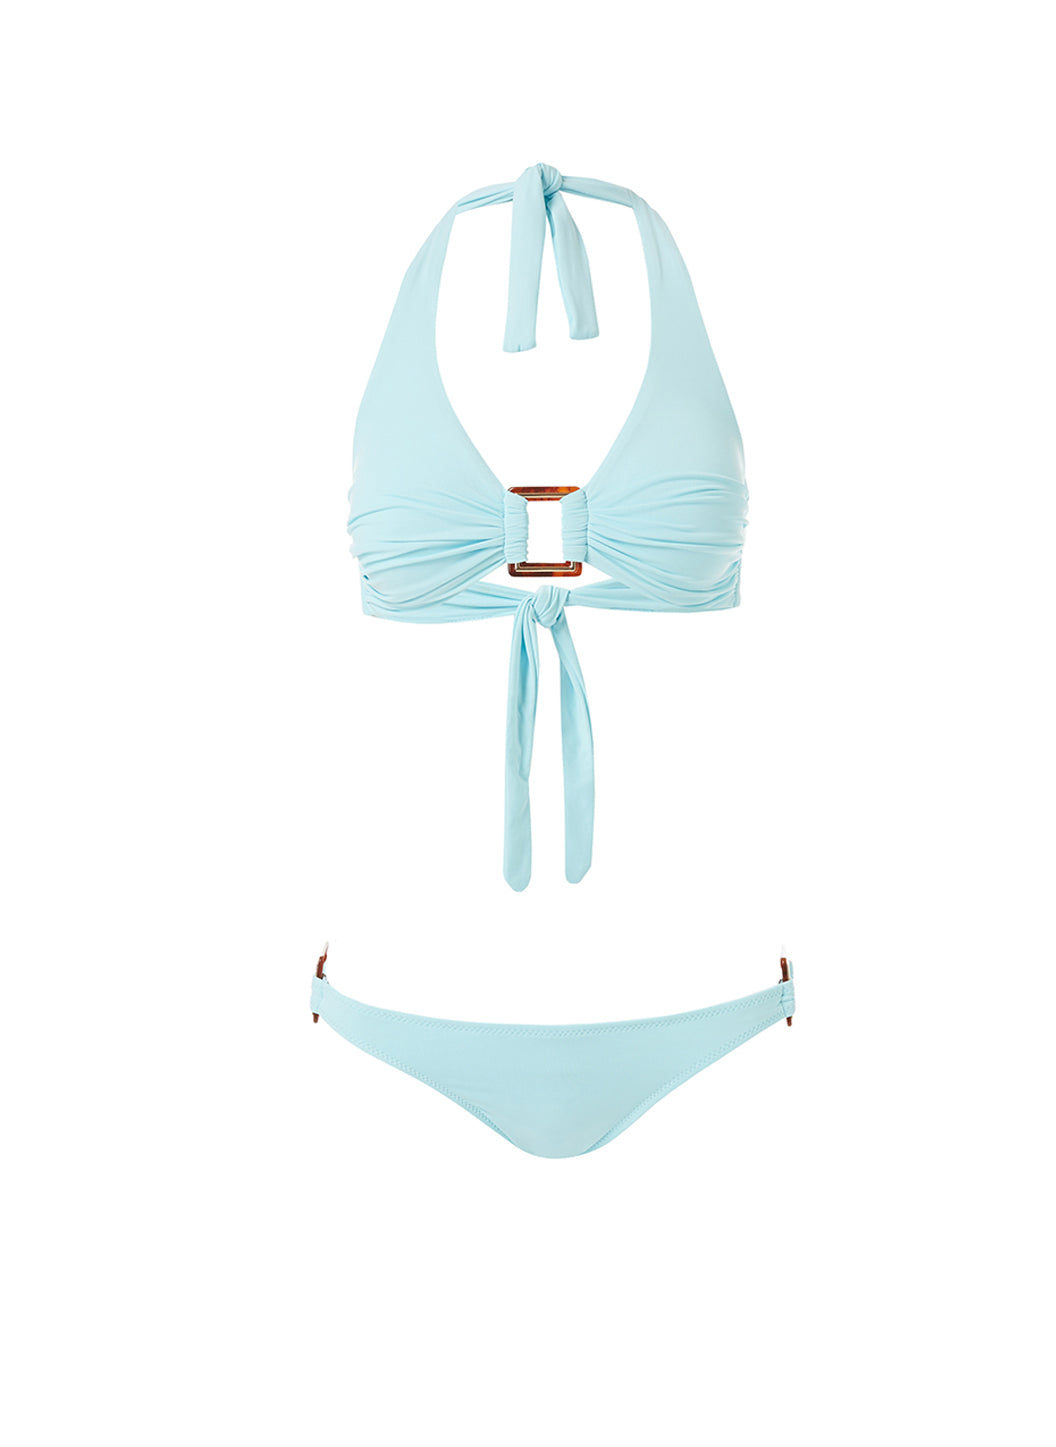 Paris Sky Halterneck Rectangle Trim Bikini  - Melissa Odabash Halterneck Bikinis